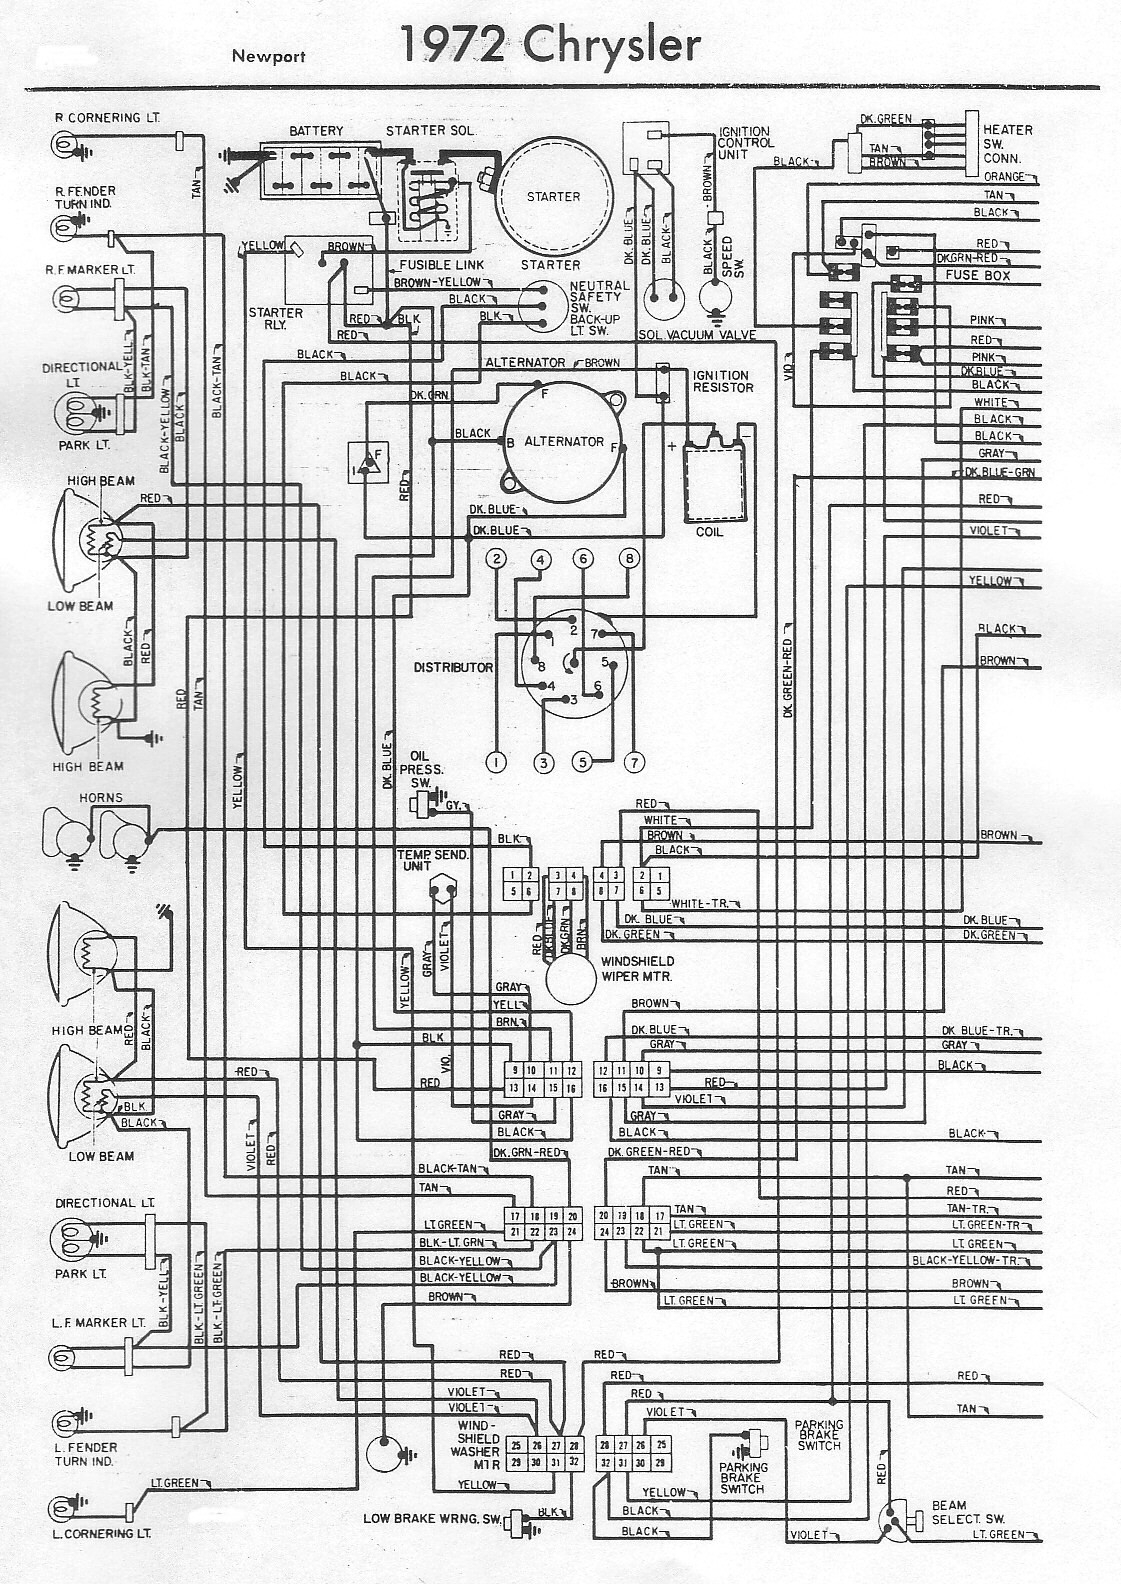 1966 chrysler newport wiring diagram 1965 chrysler newport wiring diagram